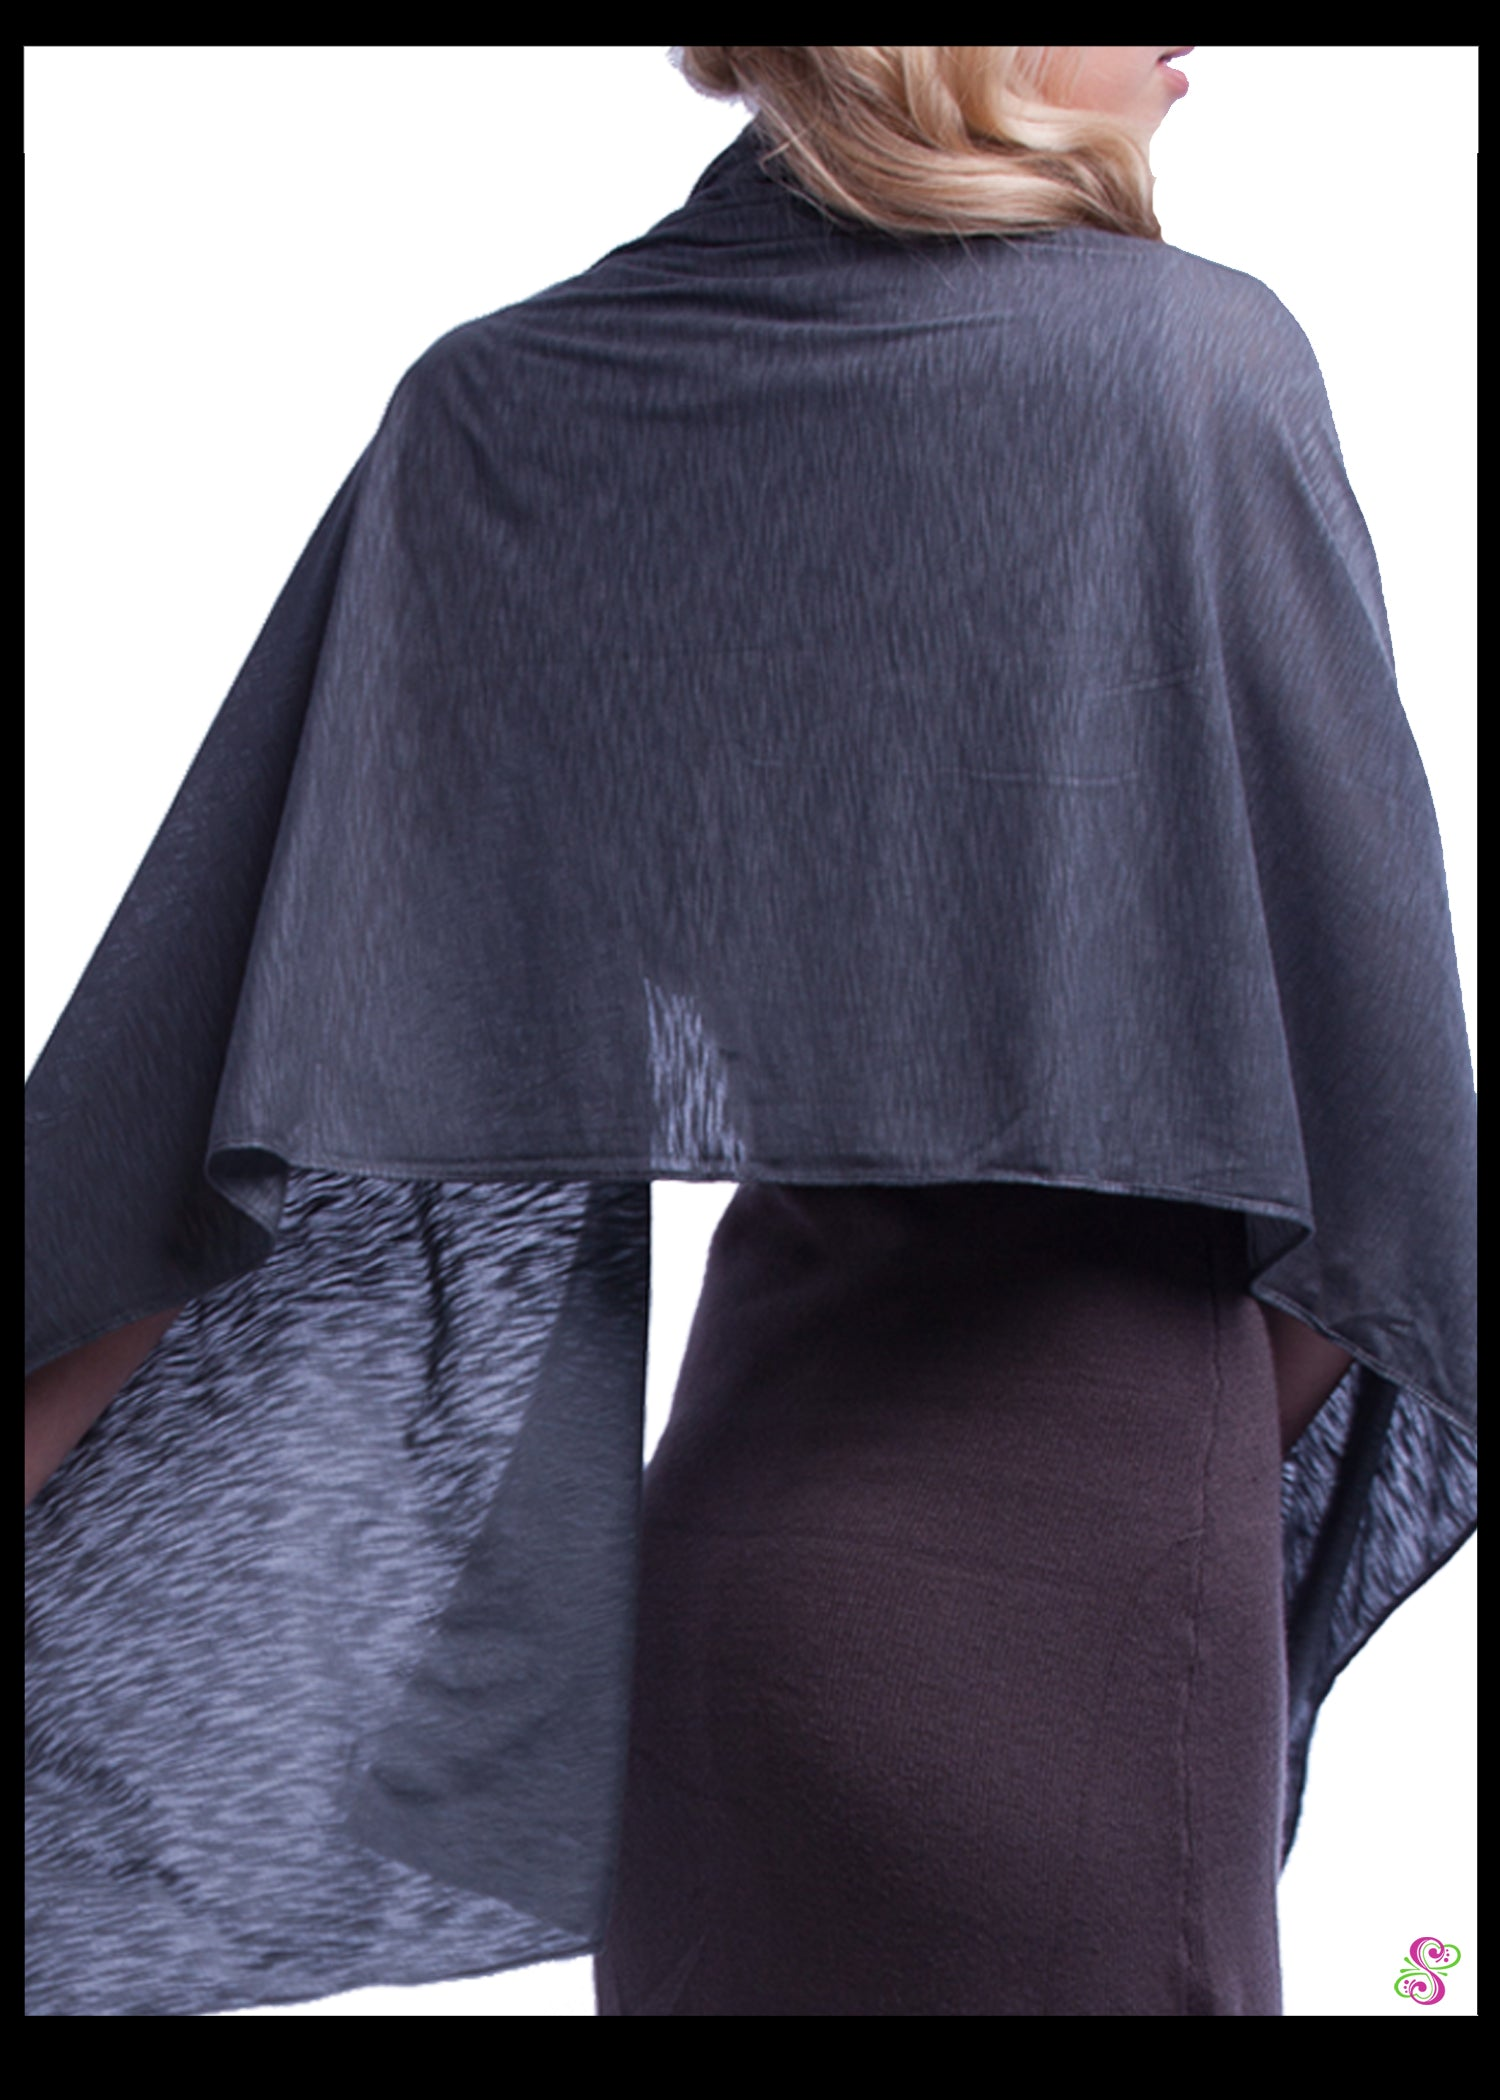 Carrie City Shawl, Devoré Viscose, Grey